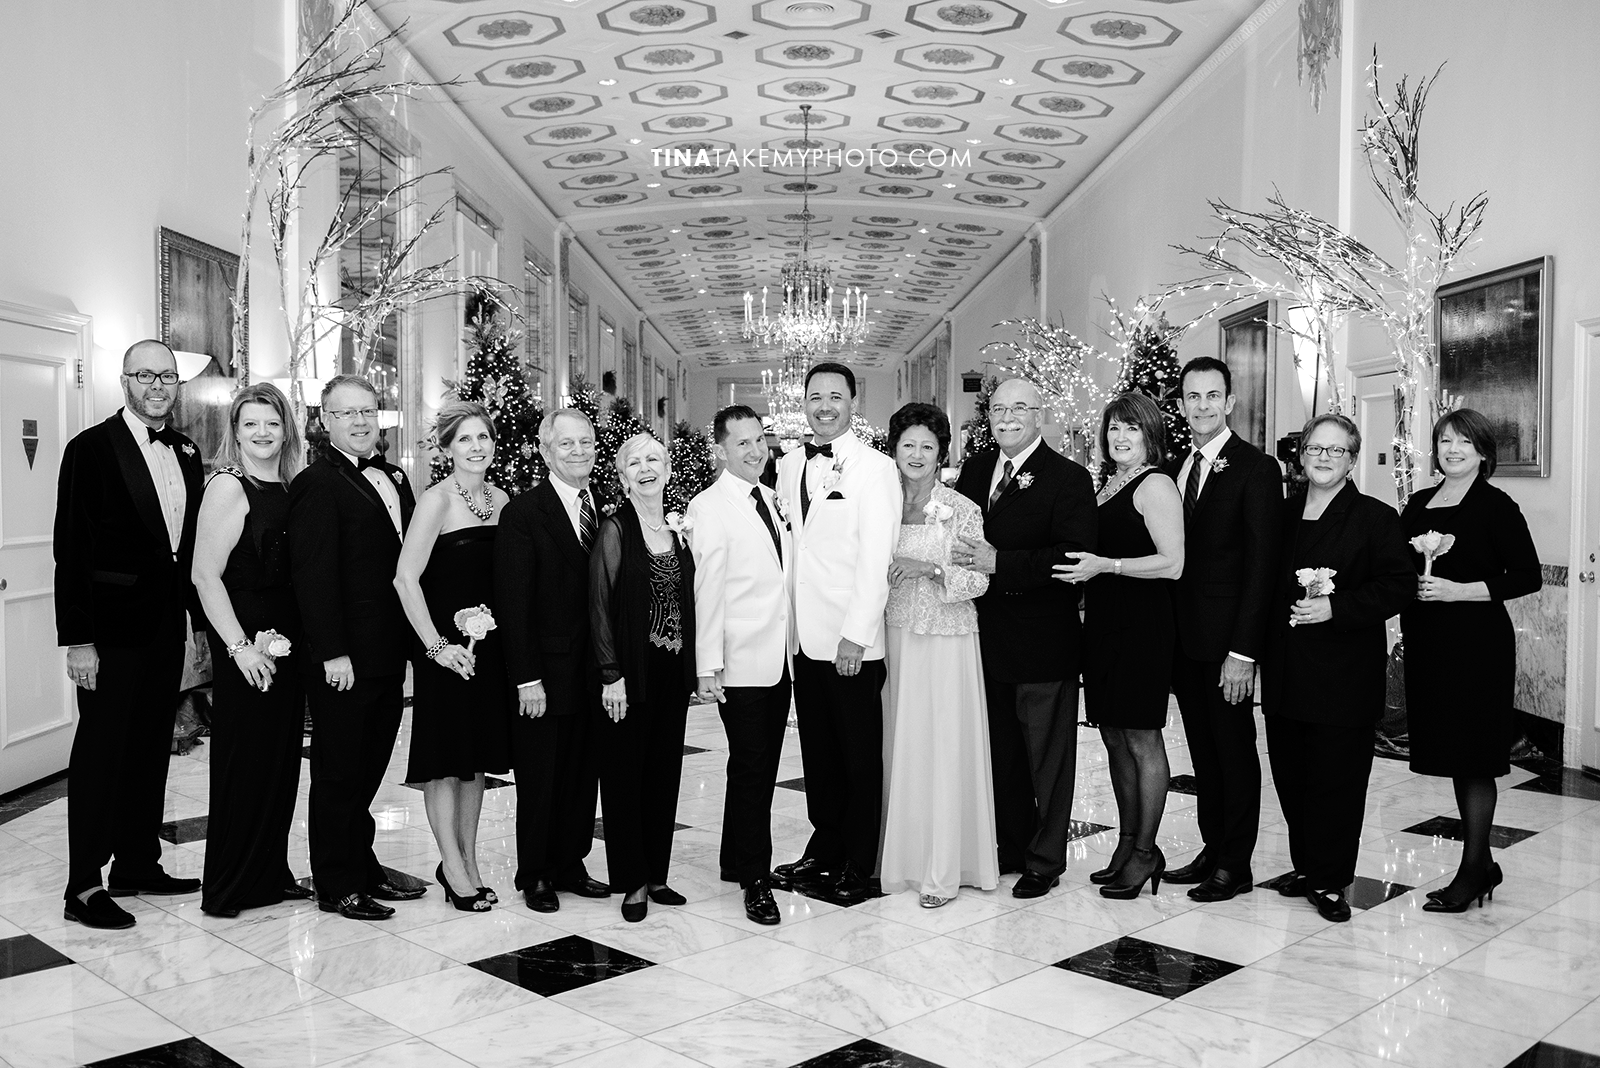 31-Washington-DC-Virginia-Gay-Same-Sex-Wedding-Pose-Party-Groomsmen-Family-Bridesmaids-2-13-14-Mayflower-Hotel